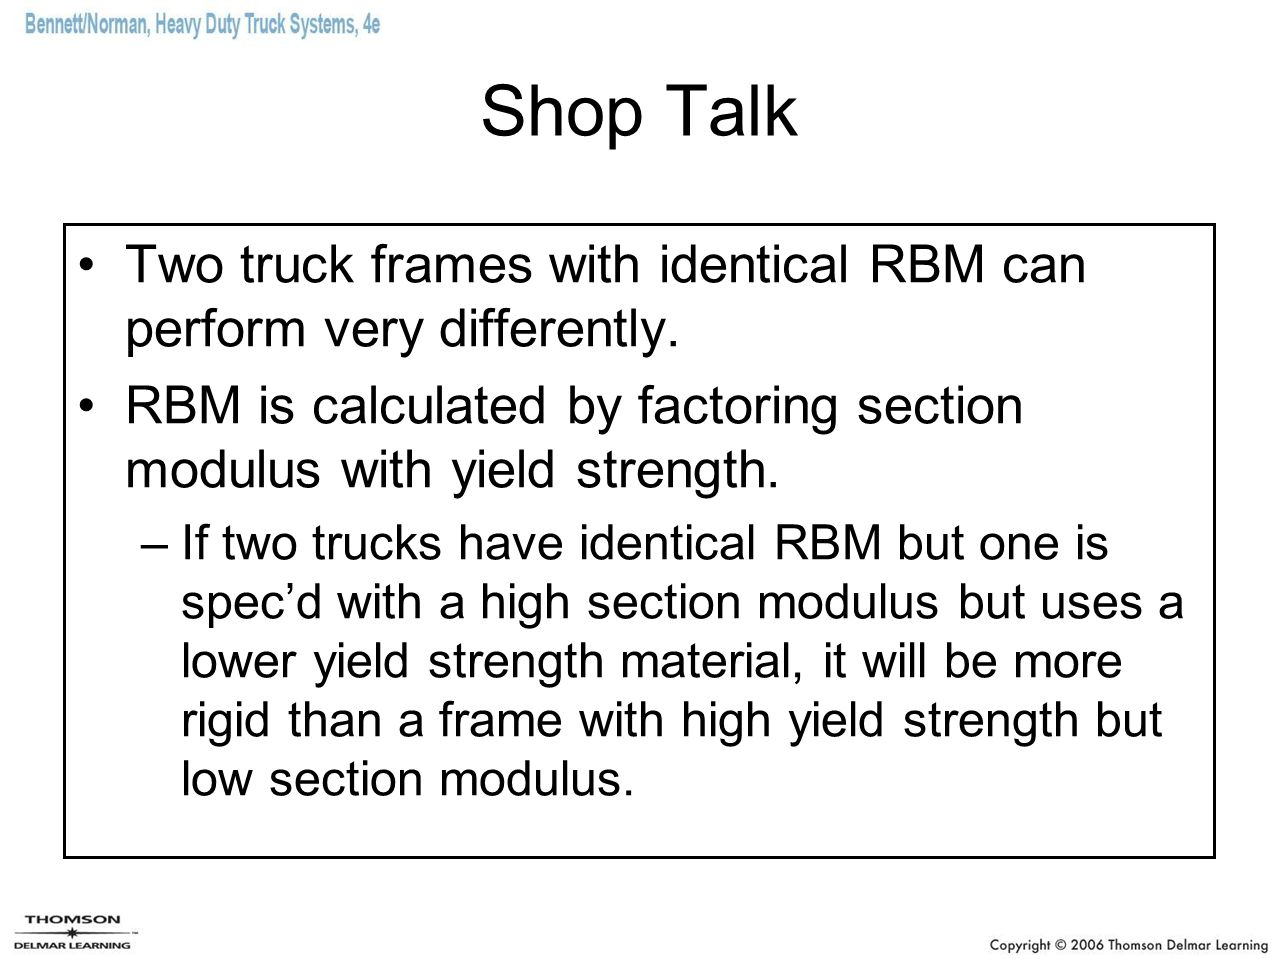 Shop Talk Two truck frames with identical RBM can perform very differently. RBM is calculated by factoring section modulus with yield strength.